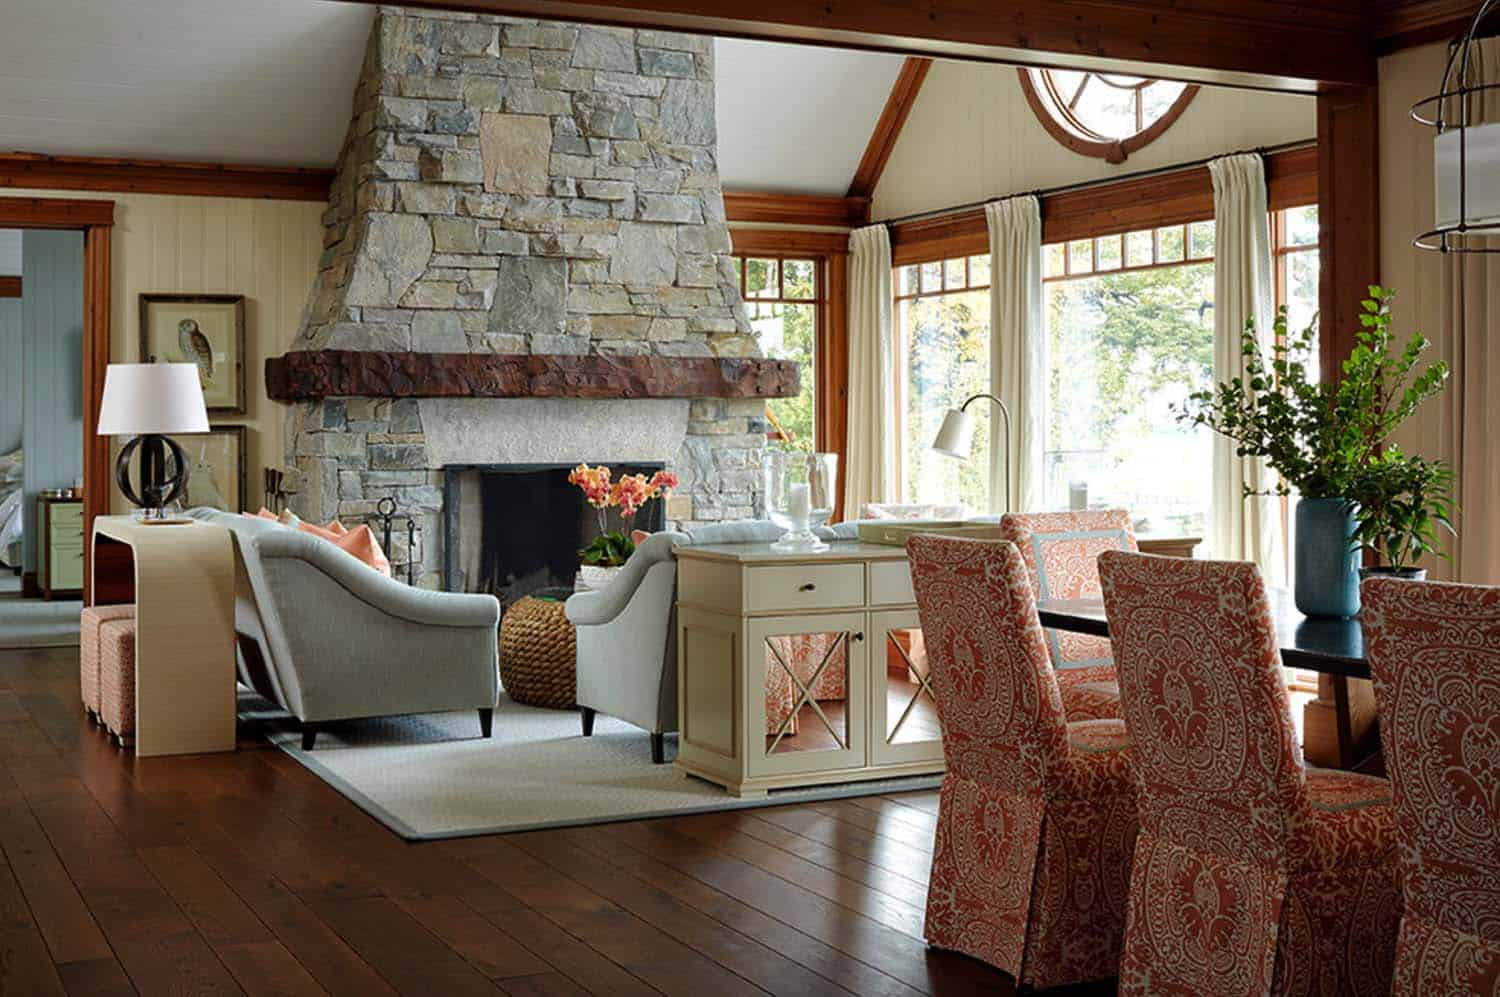 Muskoka Lake House-Anne Hepfer Designs-04-1 Kindesign